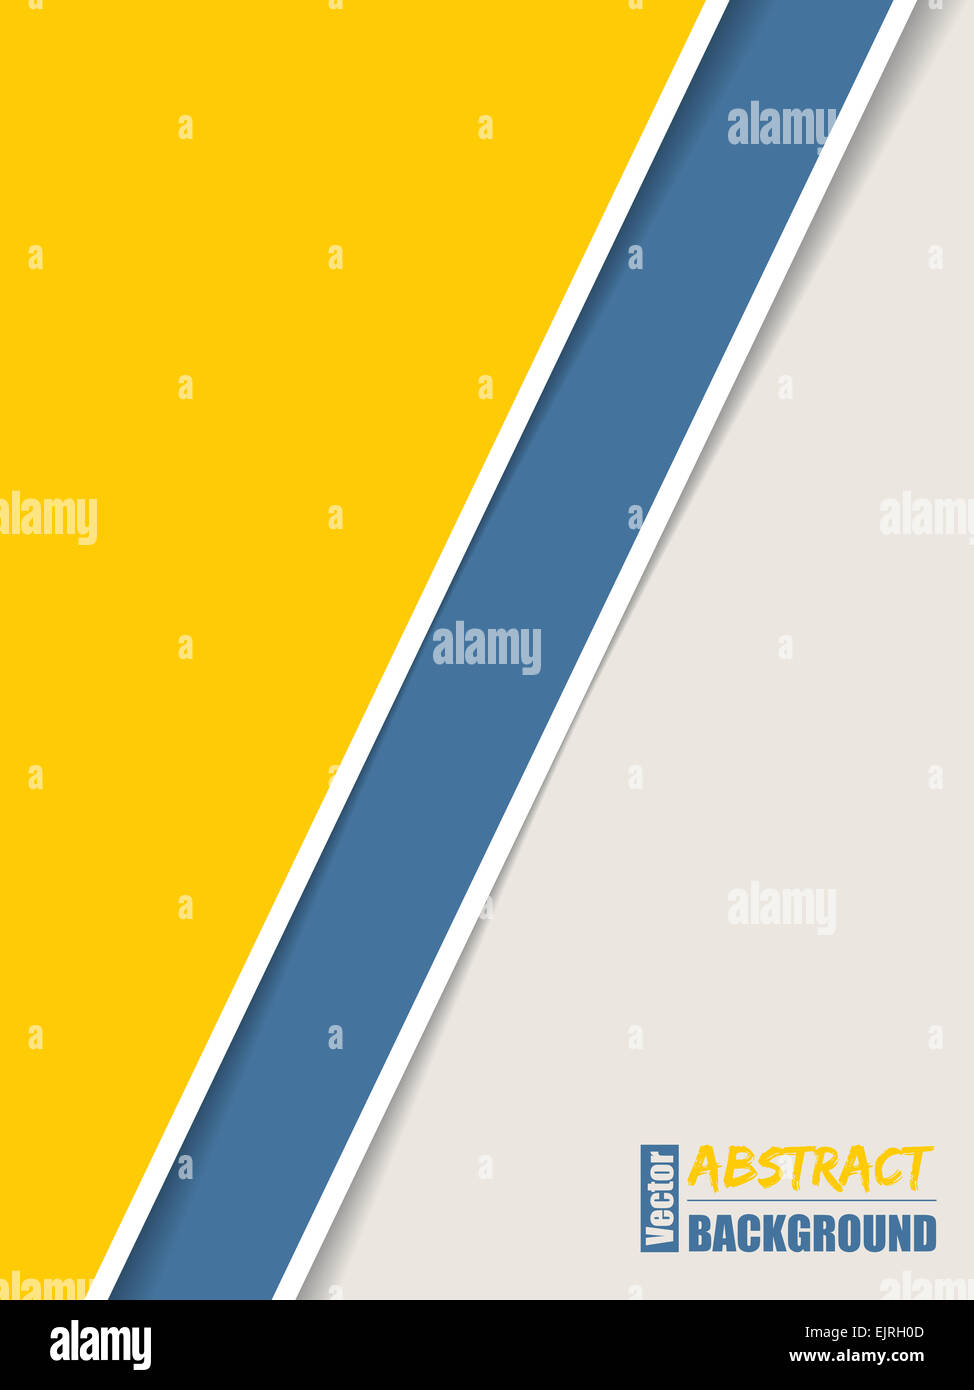 Simple brochure design with yellow blue and white stripes